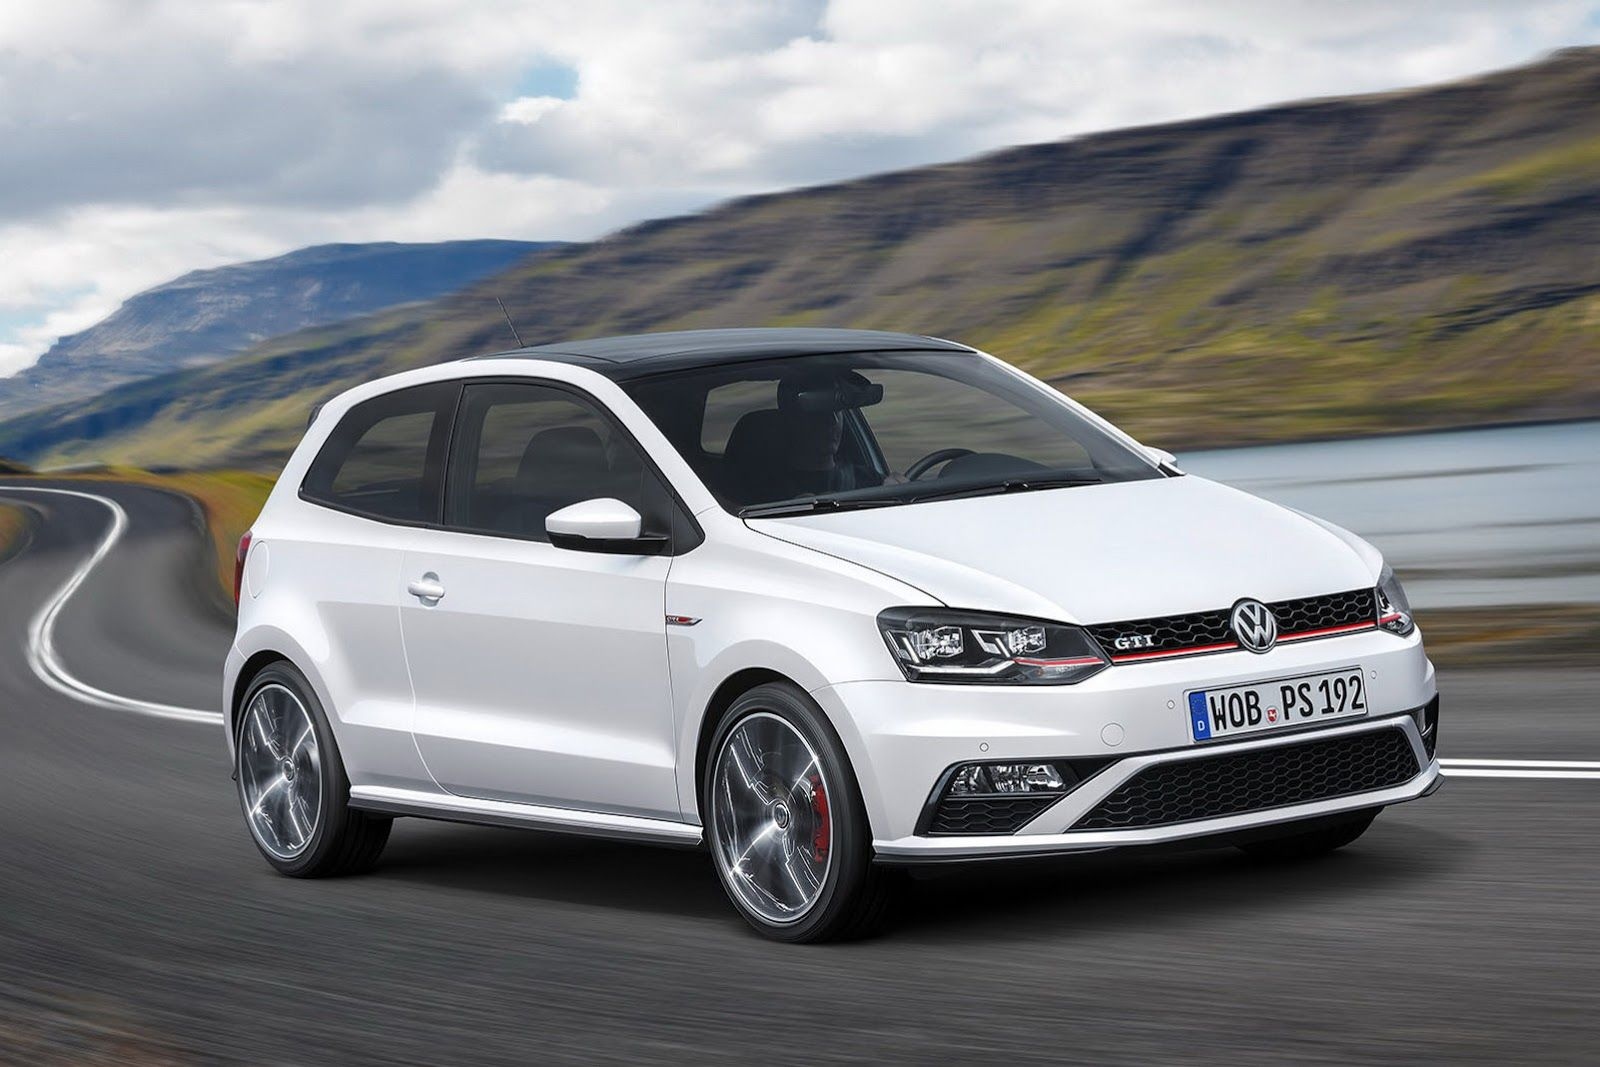 More powerful volkswagen polo gti headed for paris auto show check out more